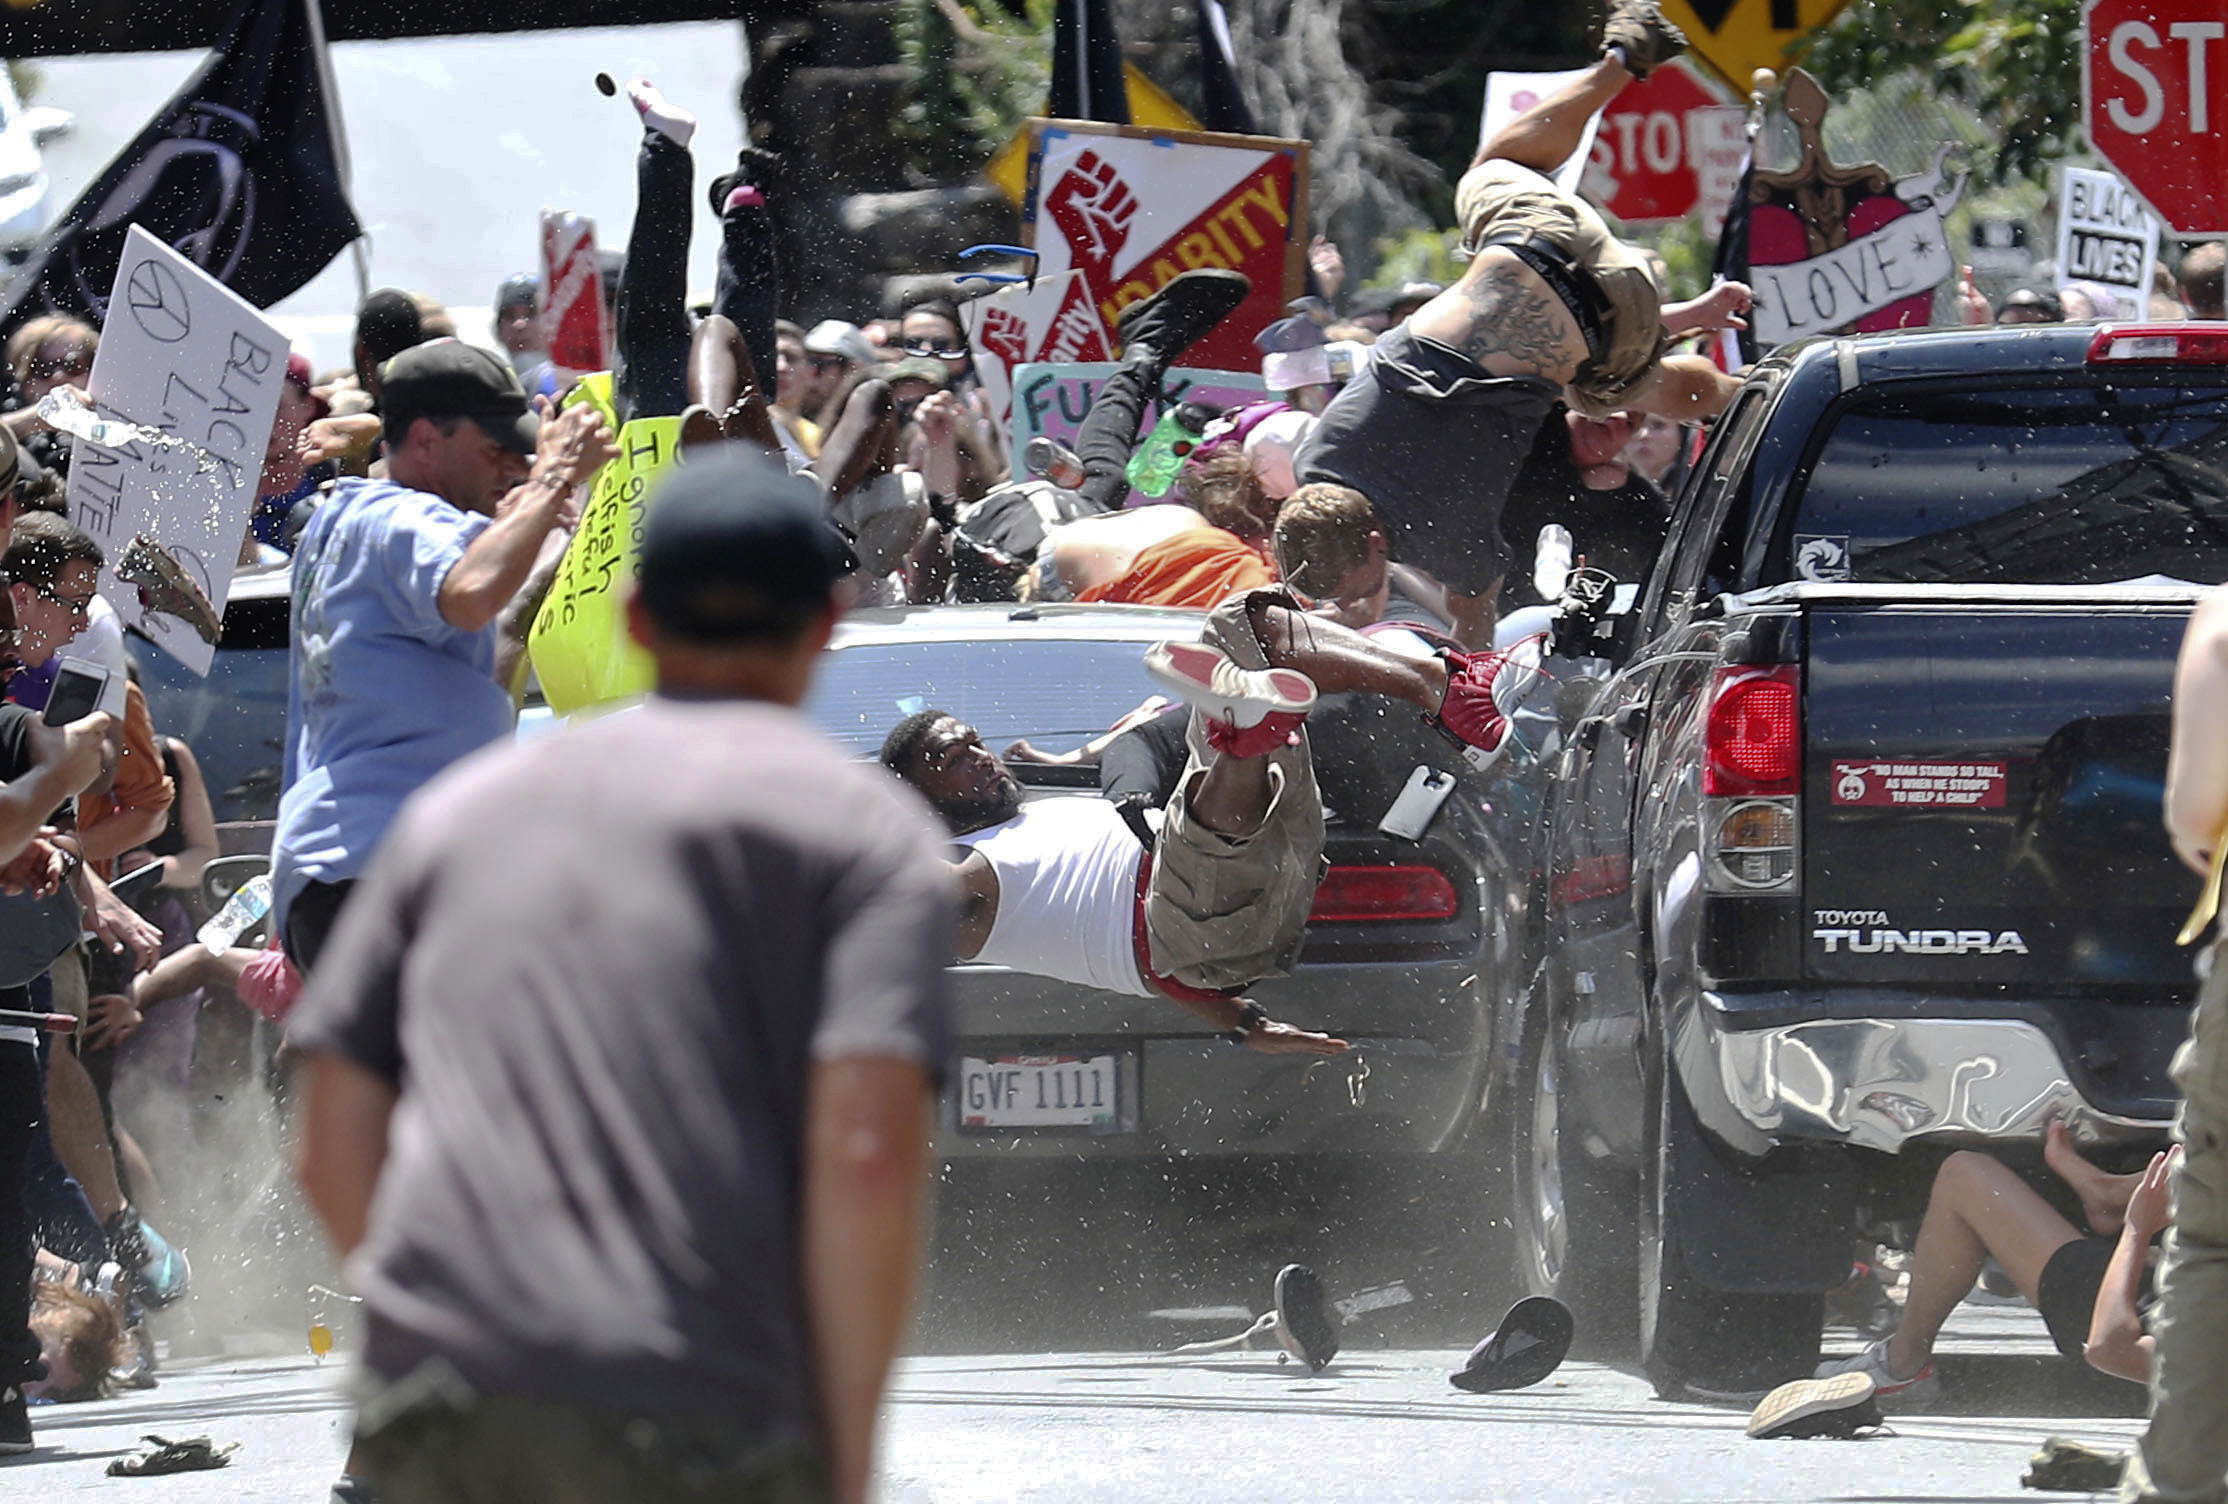 What Happened in Charlottesville Was Terrorism